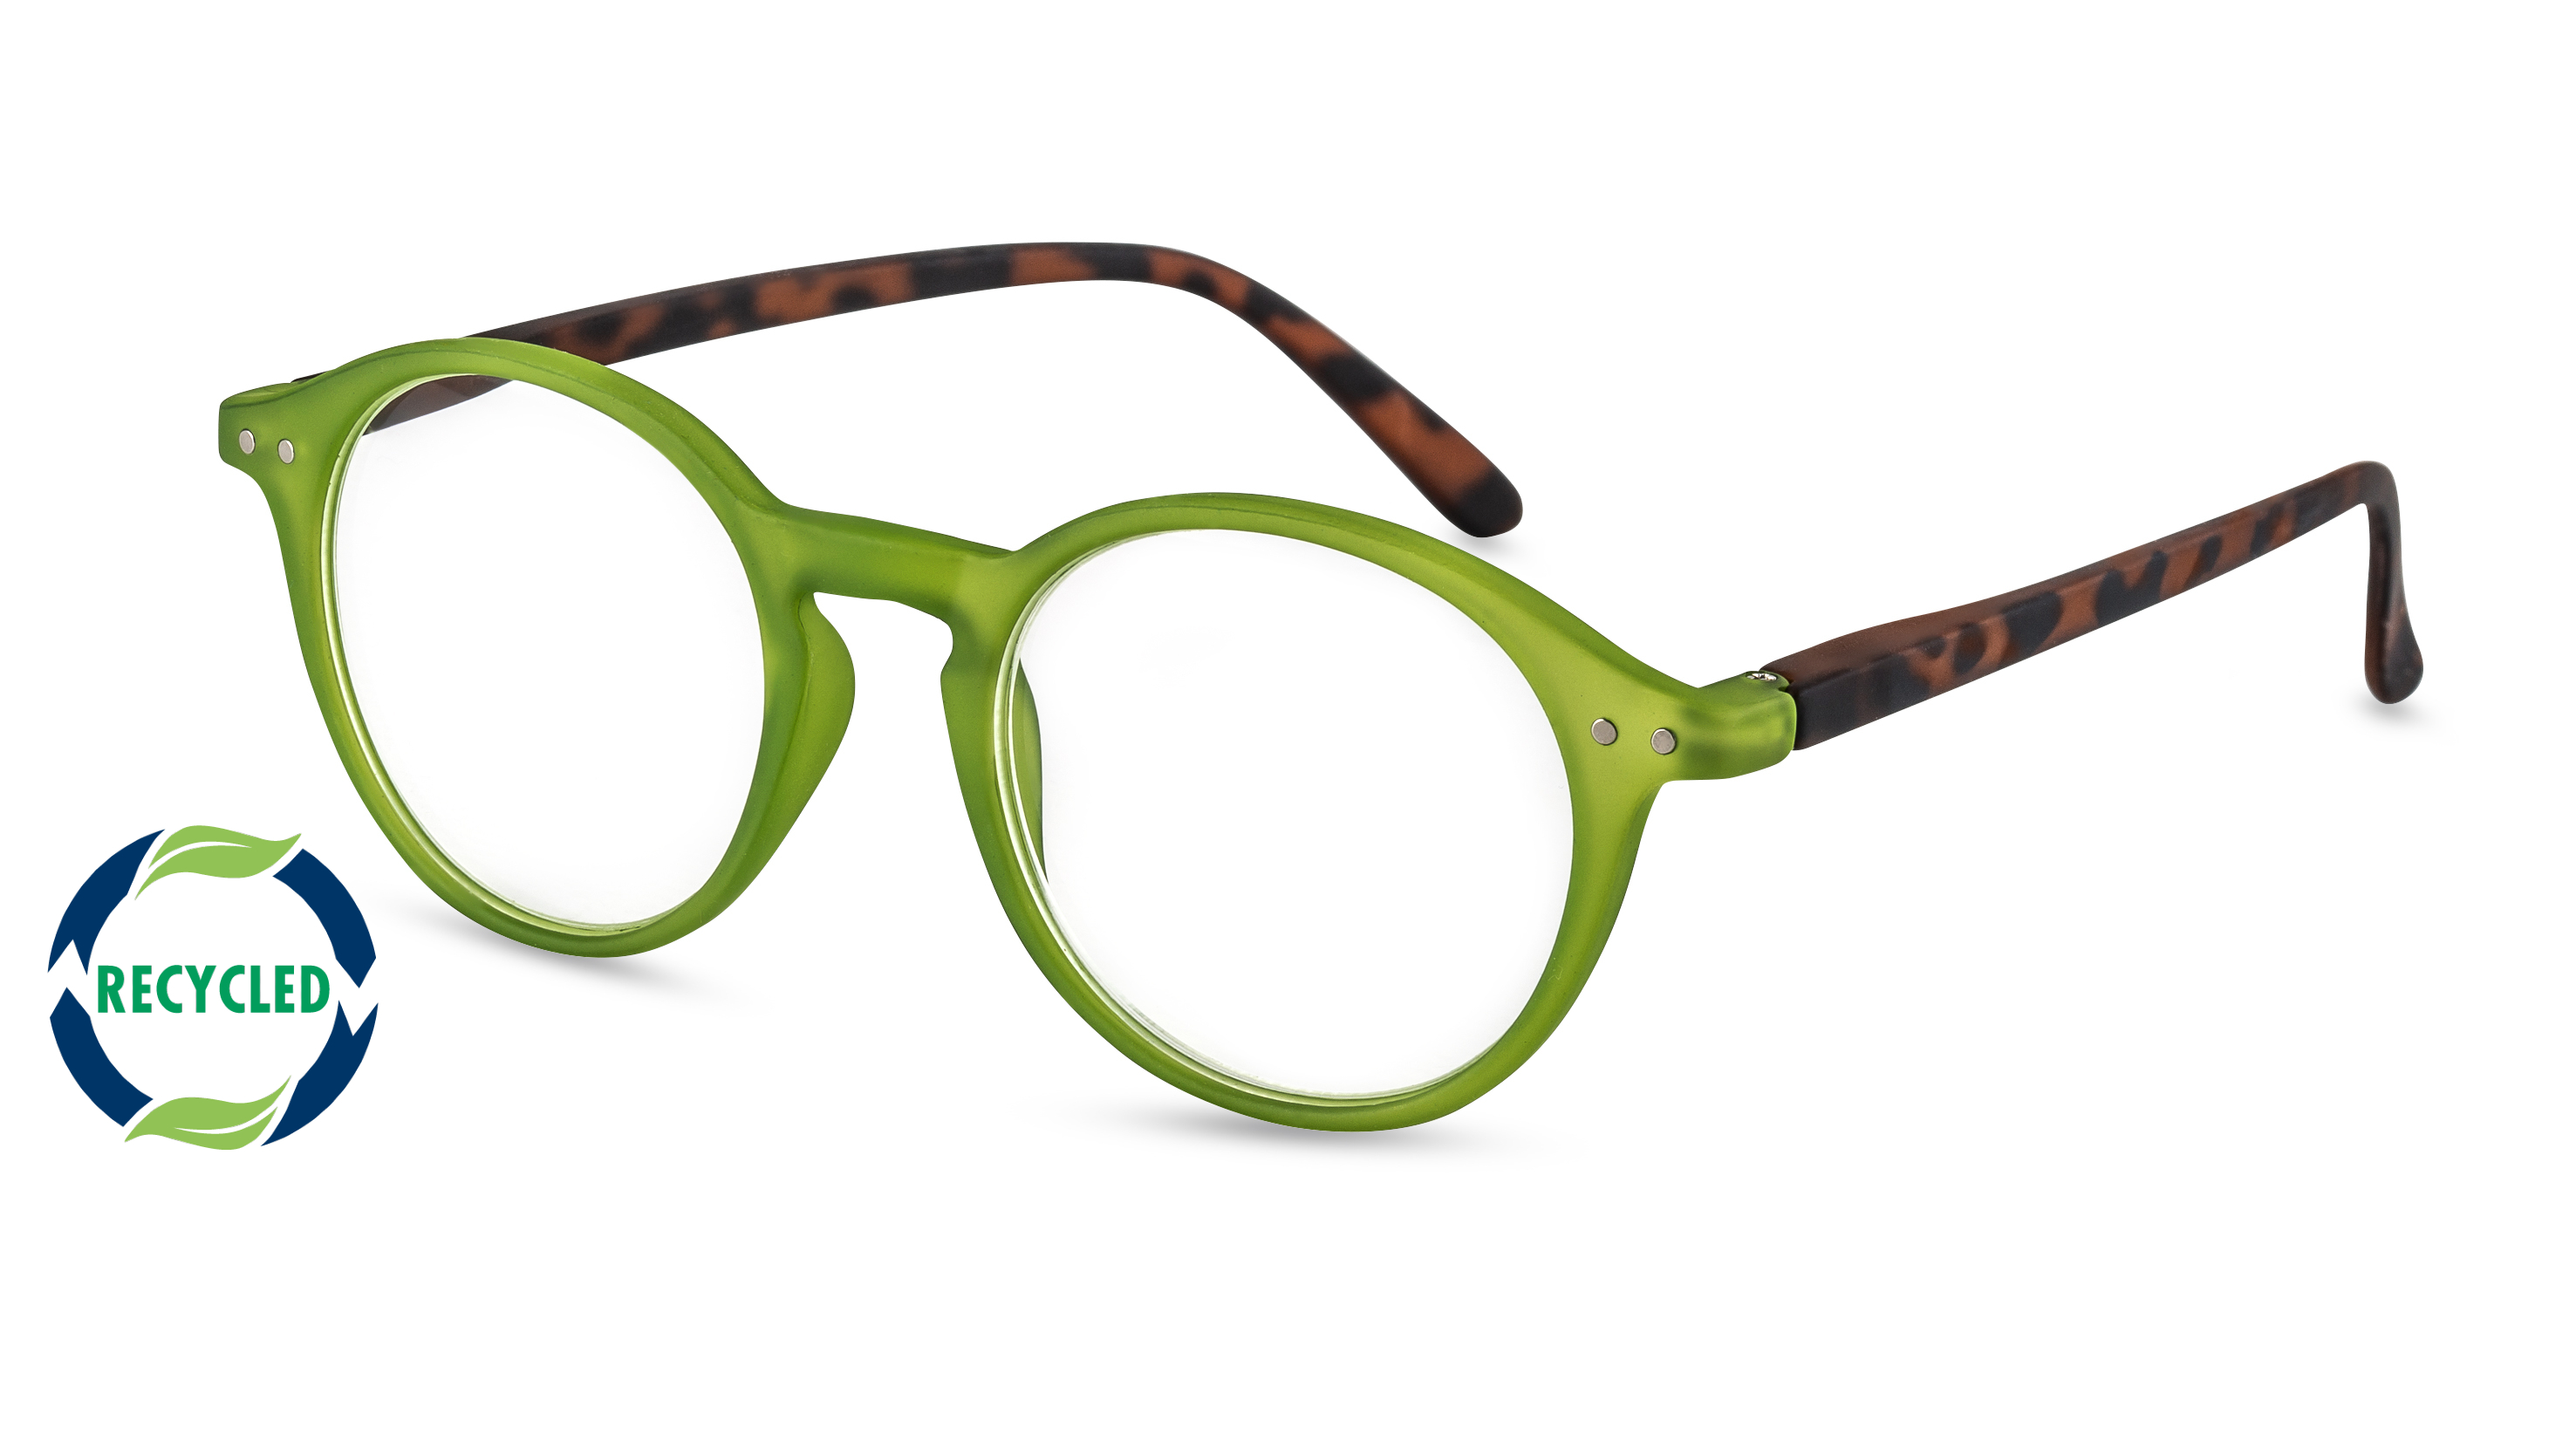 Filtral Recycled Reading Glasses Rio green-havana